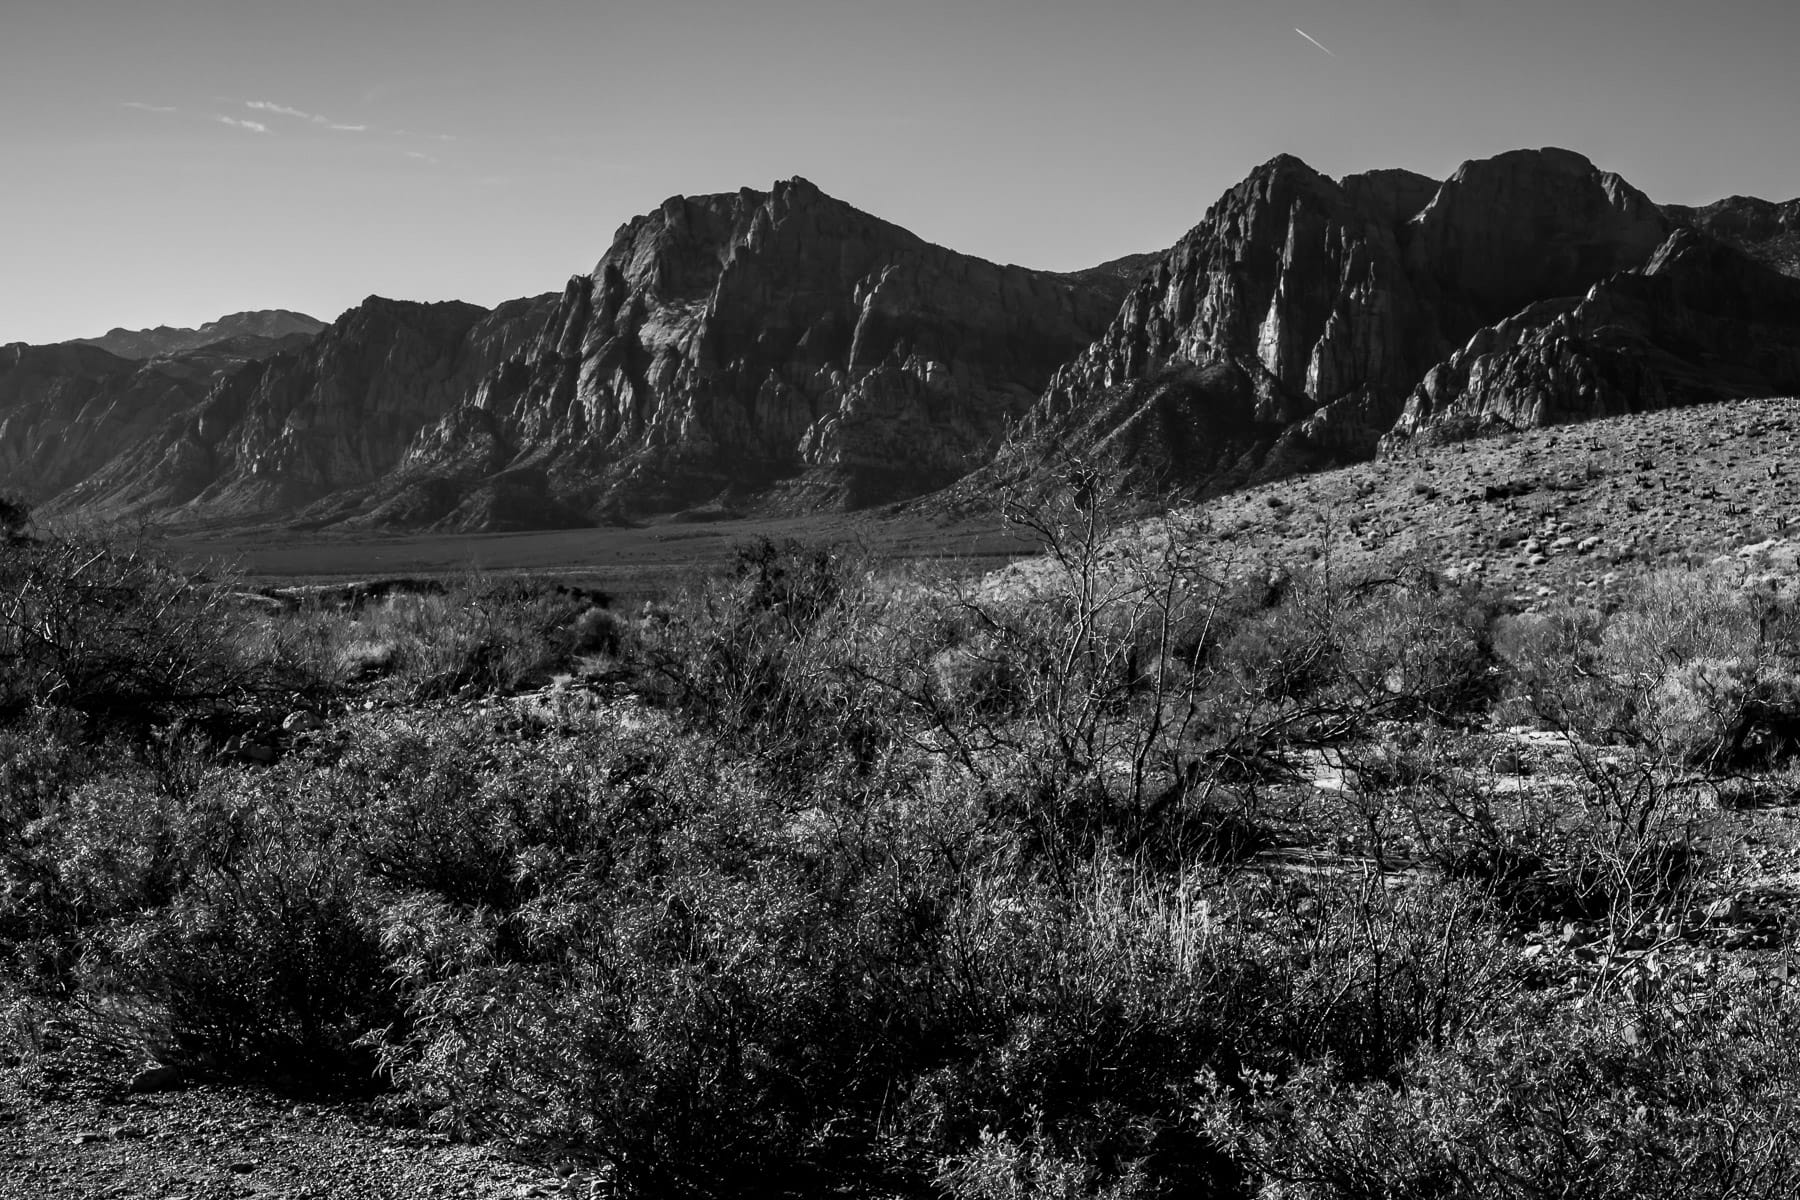 The rugged landscape of Nevada's Red Rock Canyon.